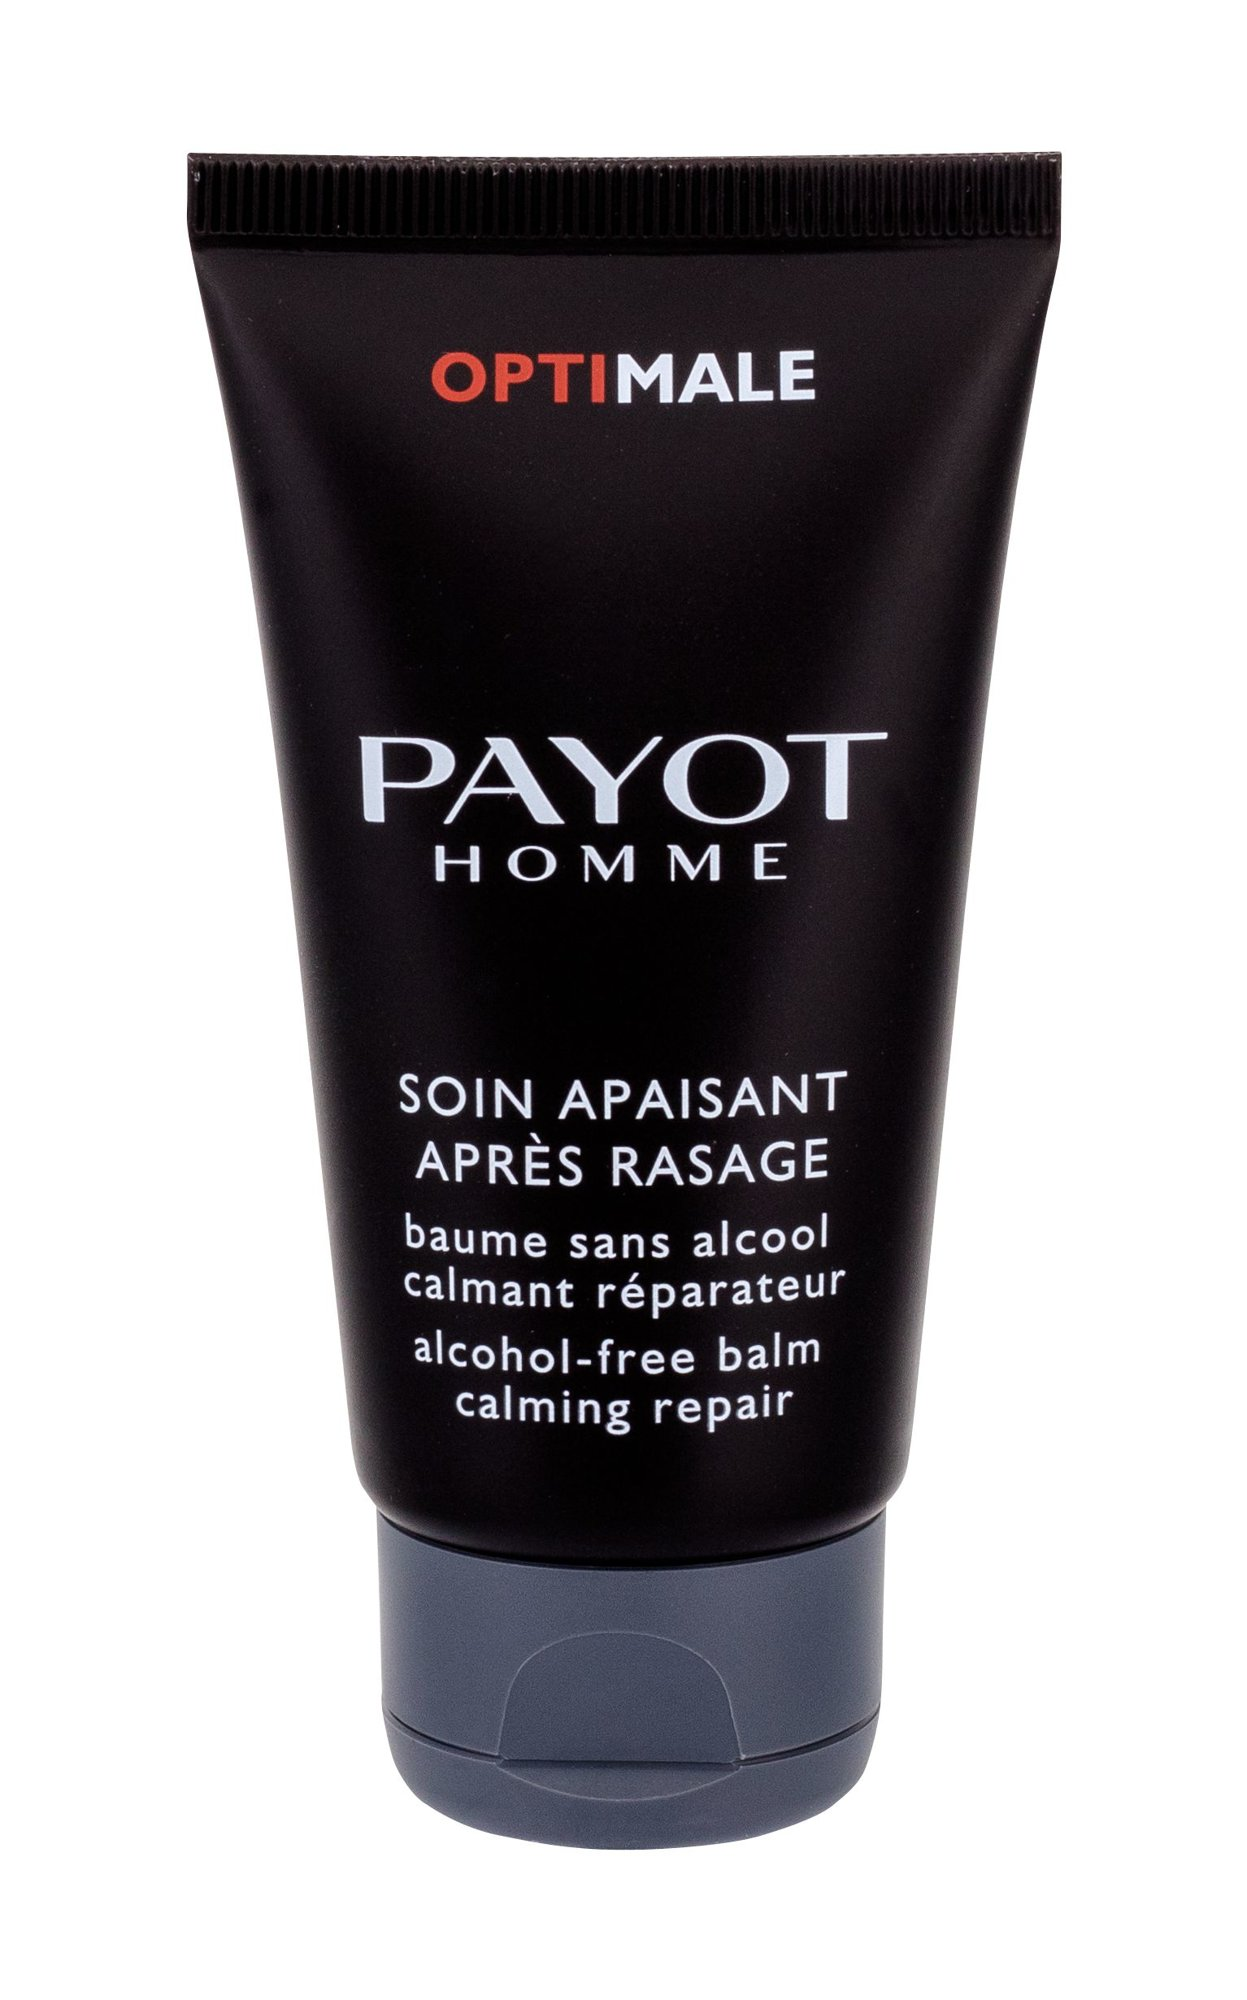 PAYOT Homme Optimale, After shave balm 50ml